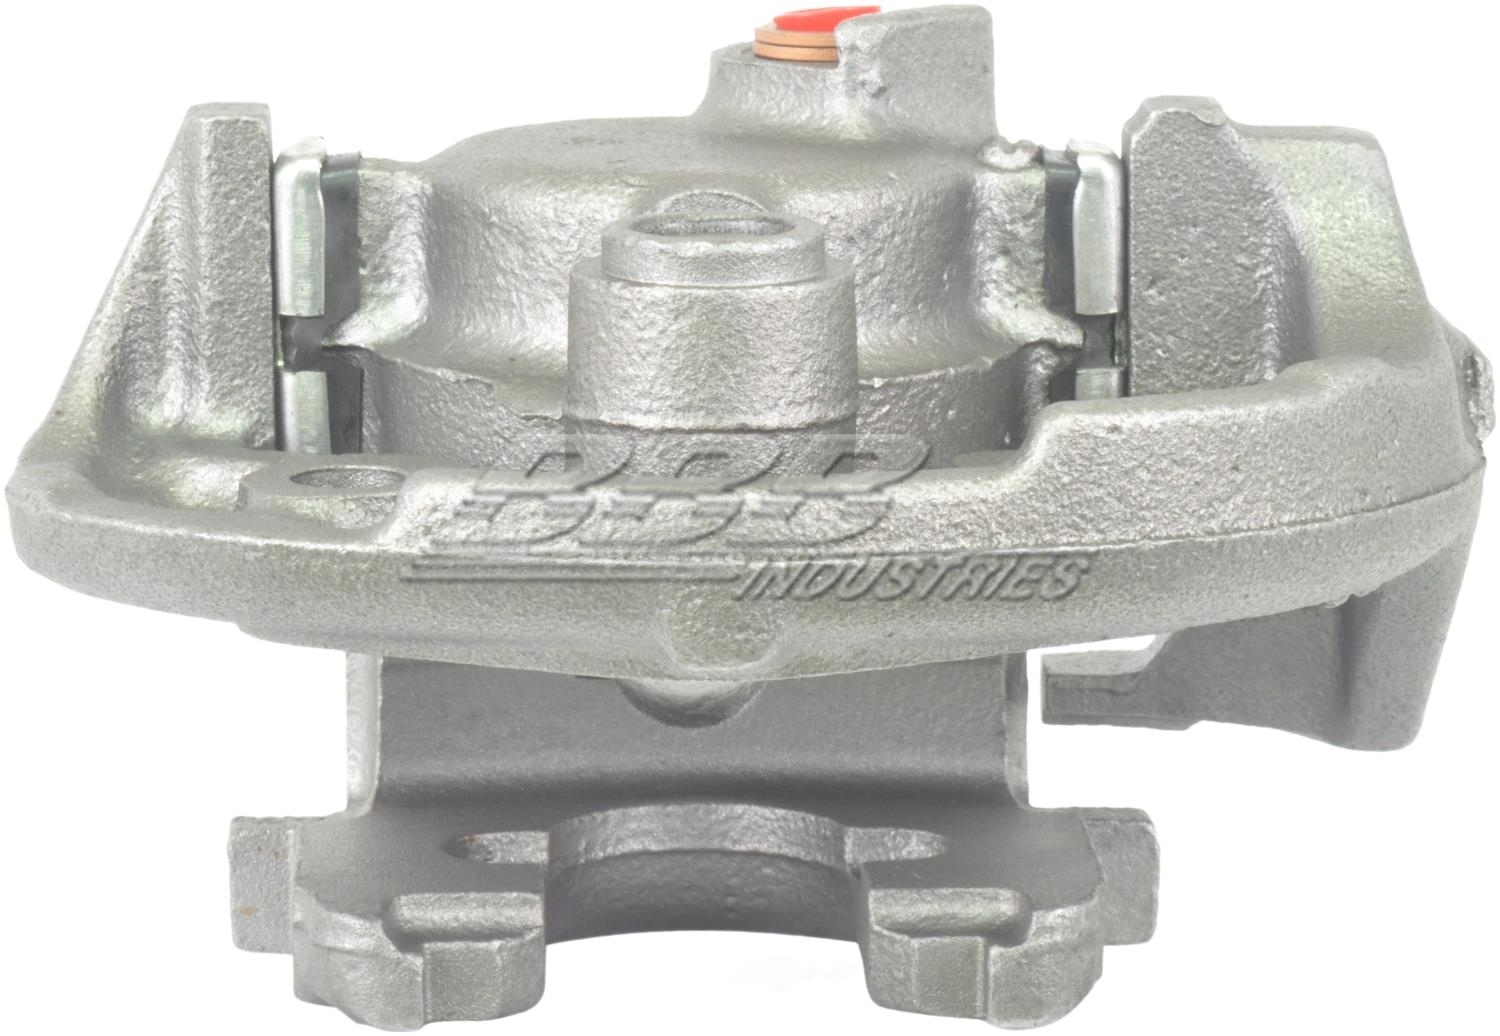 BBB INDUSTRIES - Reman Caliper w/ Installation Hardware - BBA 99-17241B